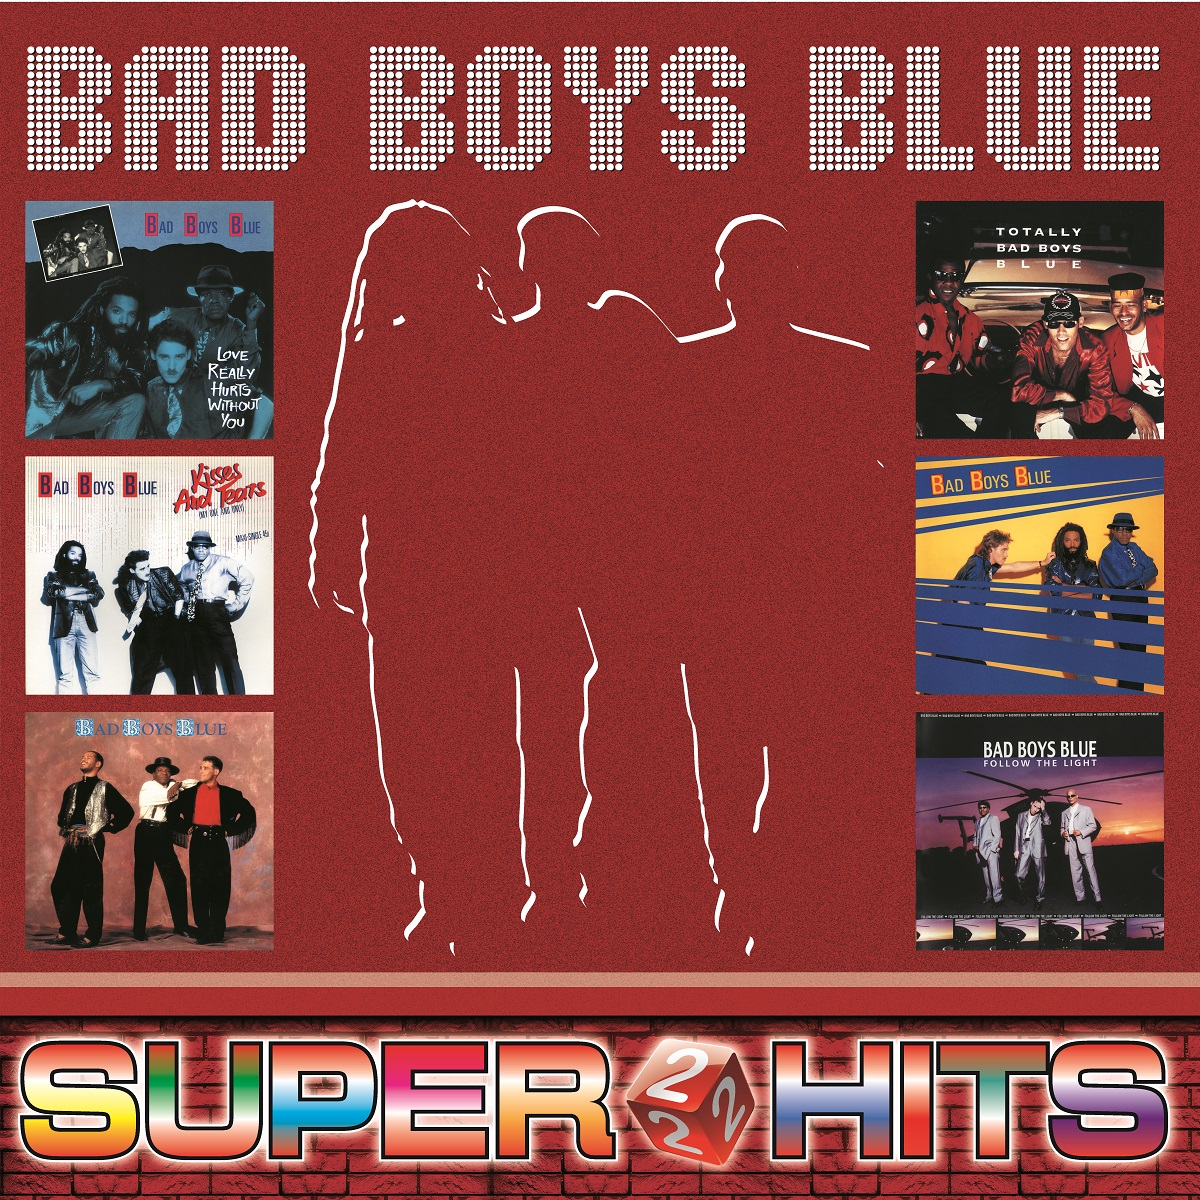 Bad Boys Blue Bad Boys Blue. Super Hits Volume 2 (LP) nina dj bobo sin with sebastian londonbeat haddaway mr president pandera bad boys blue пэтти райан кен лацло золото дискотек лучшие танцевальные хиты 80х 90х часть 2 mp3